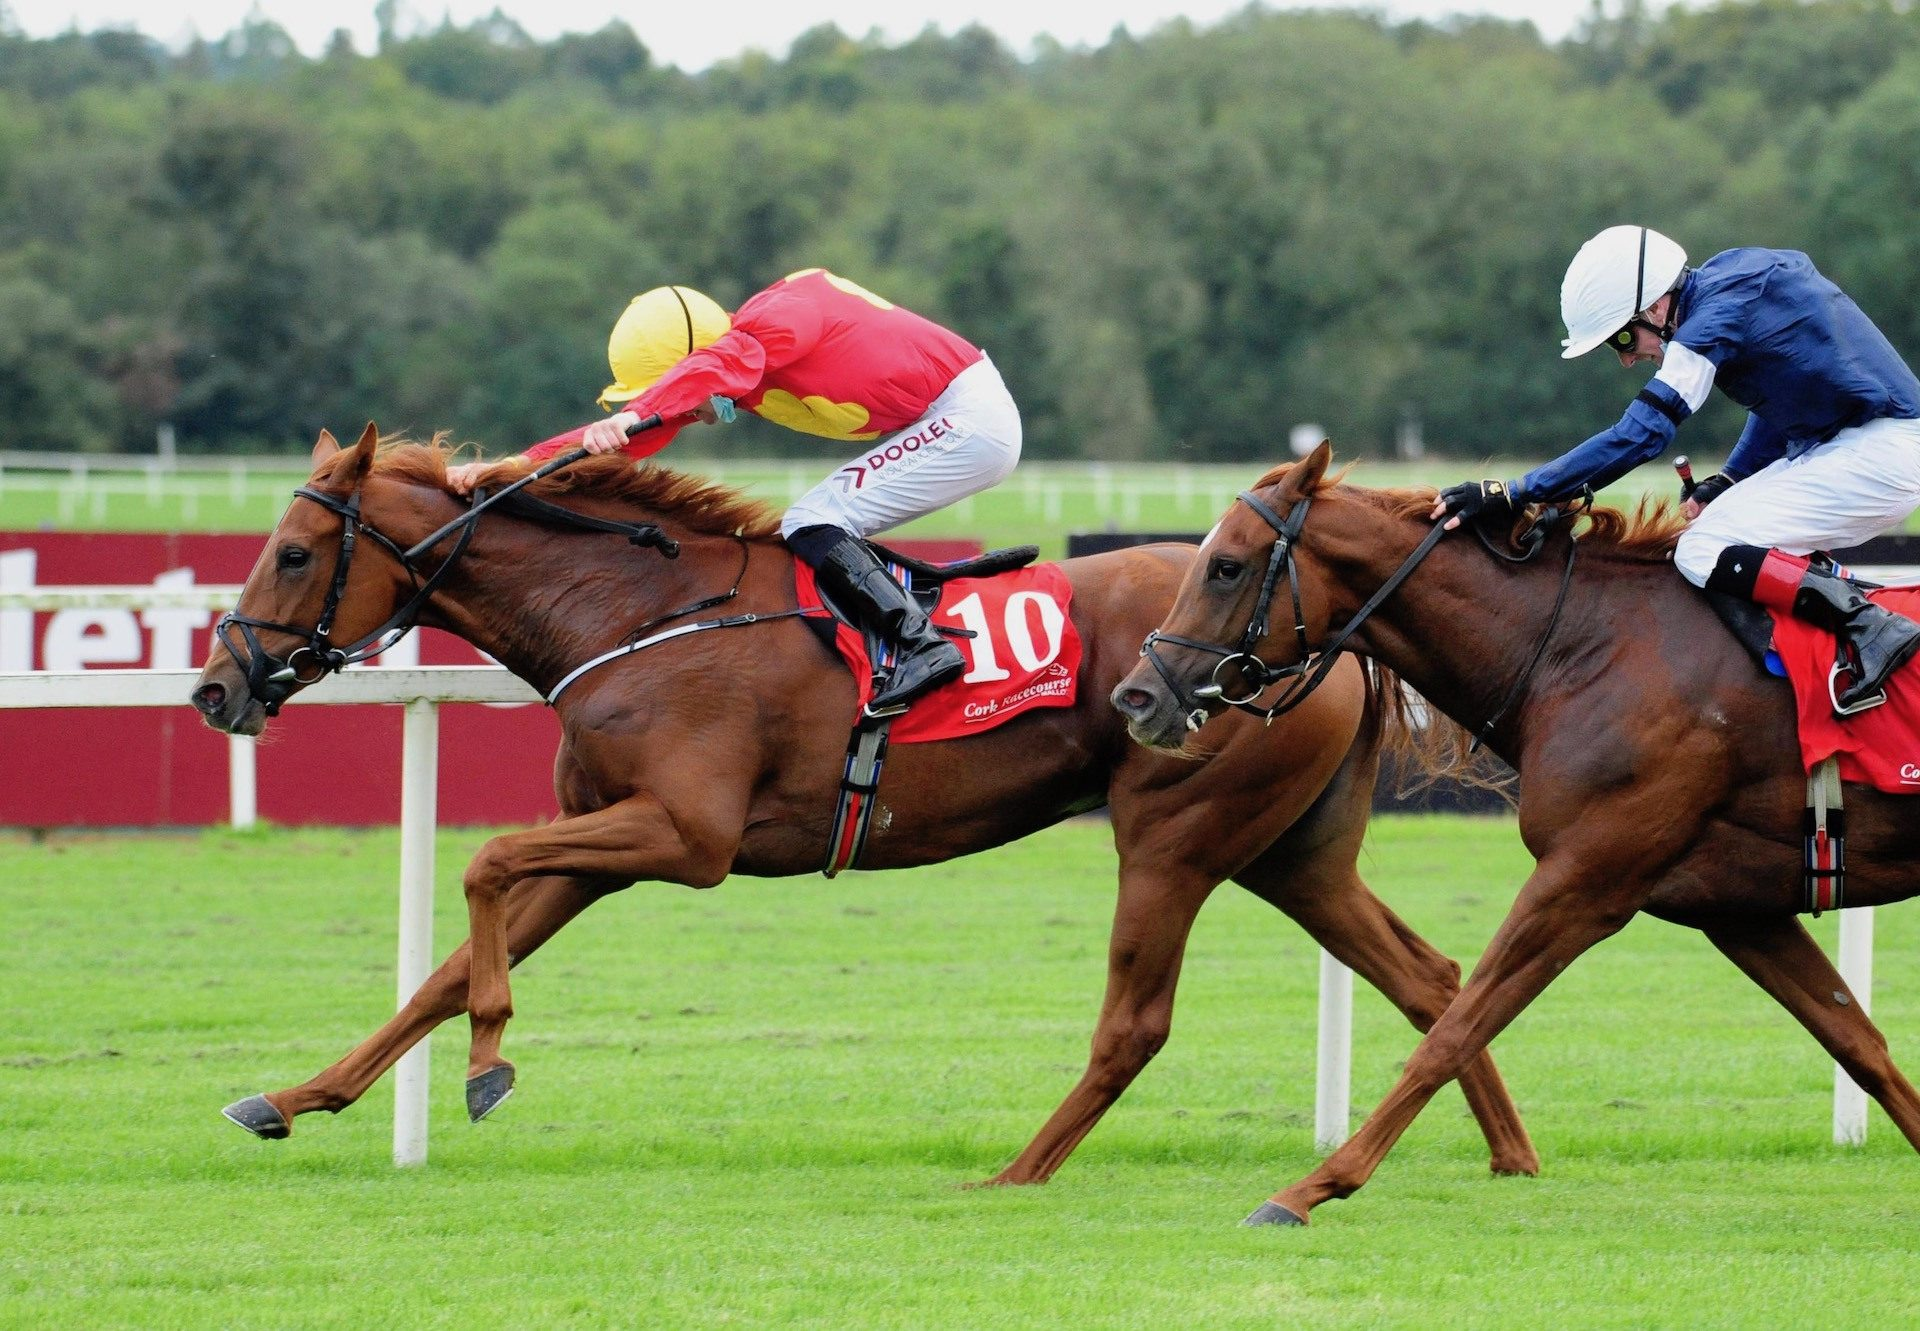 State Of Bliss (Gleneagles) winning at Chester